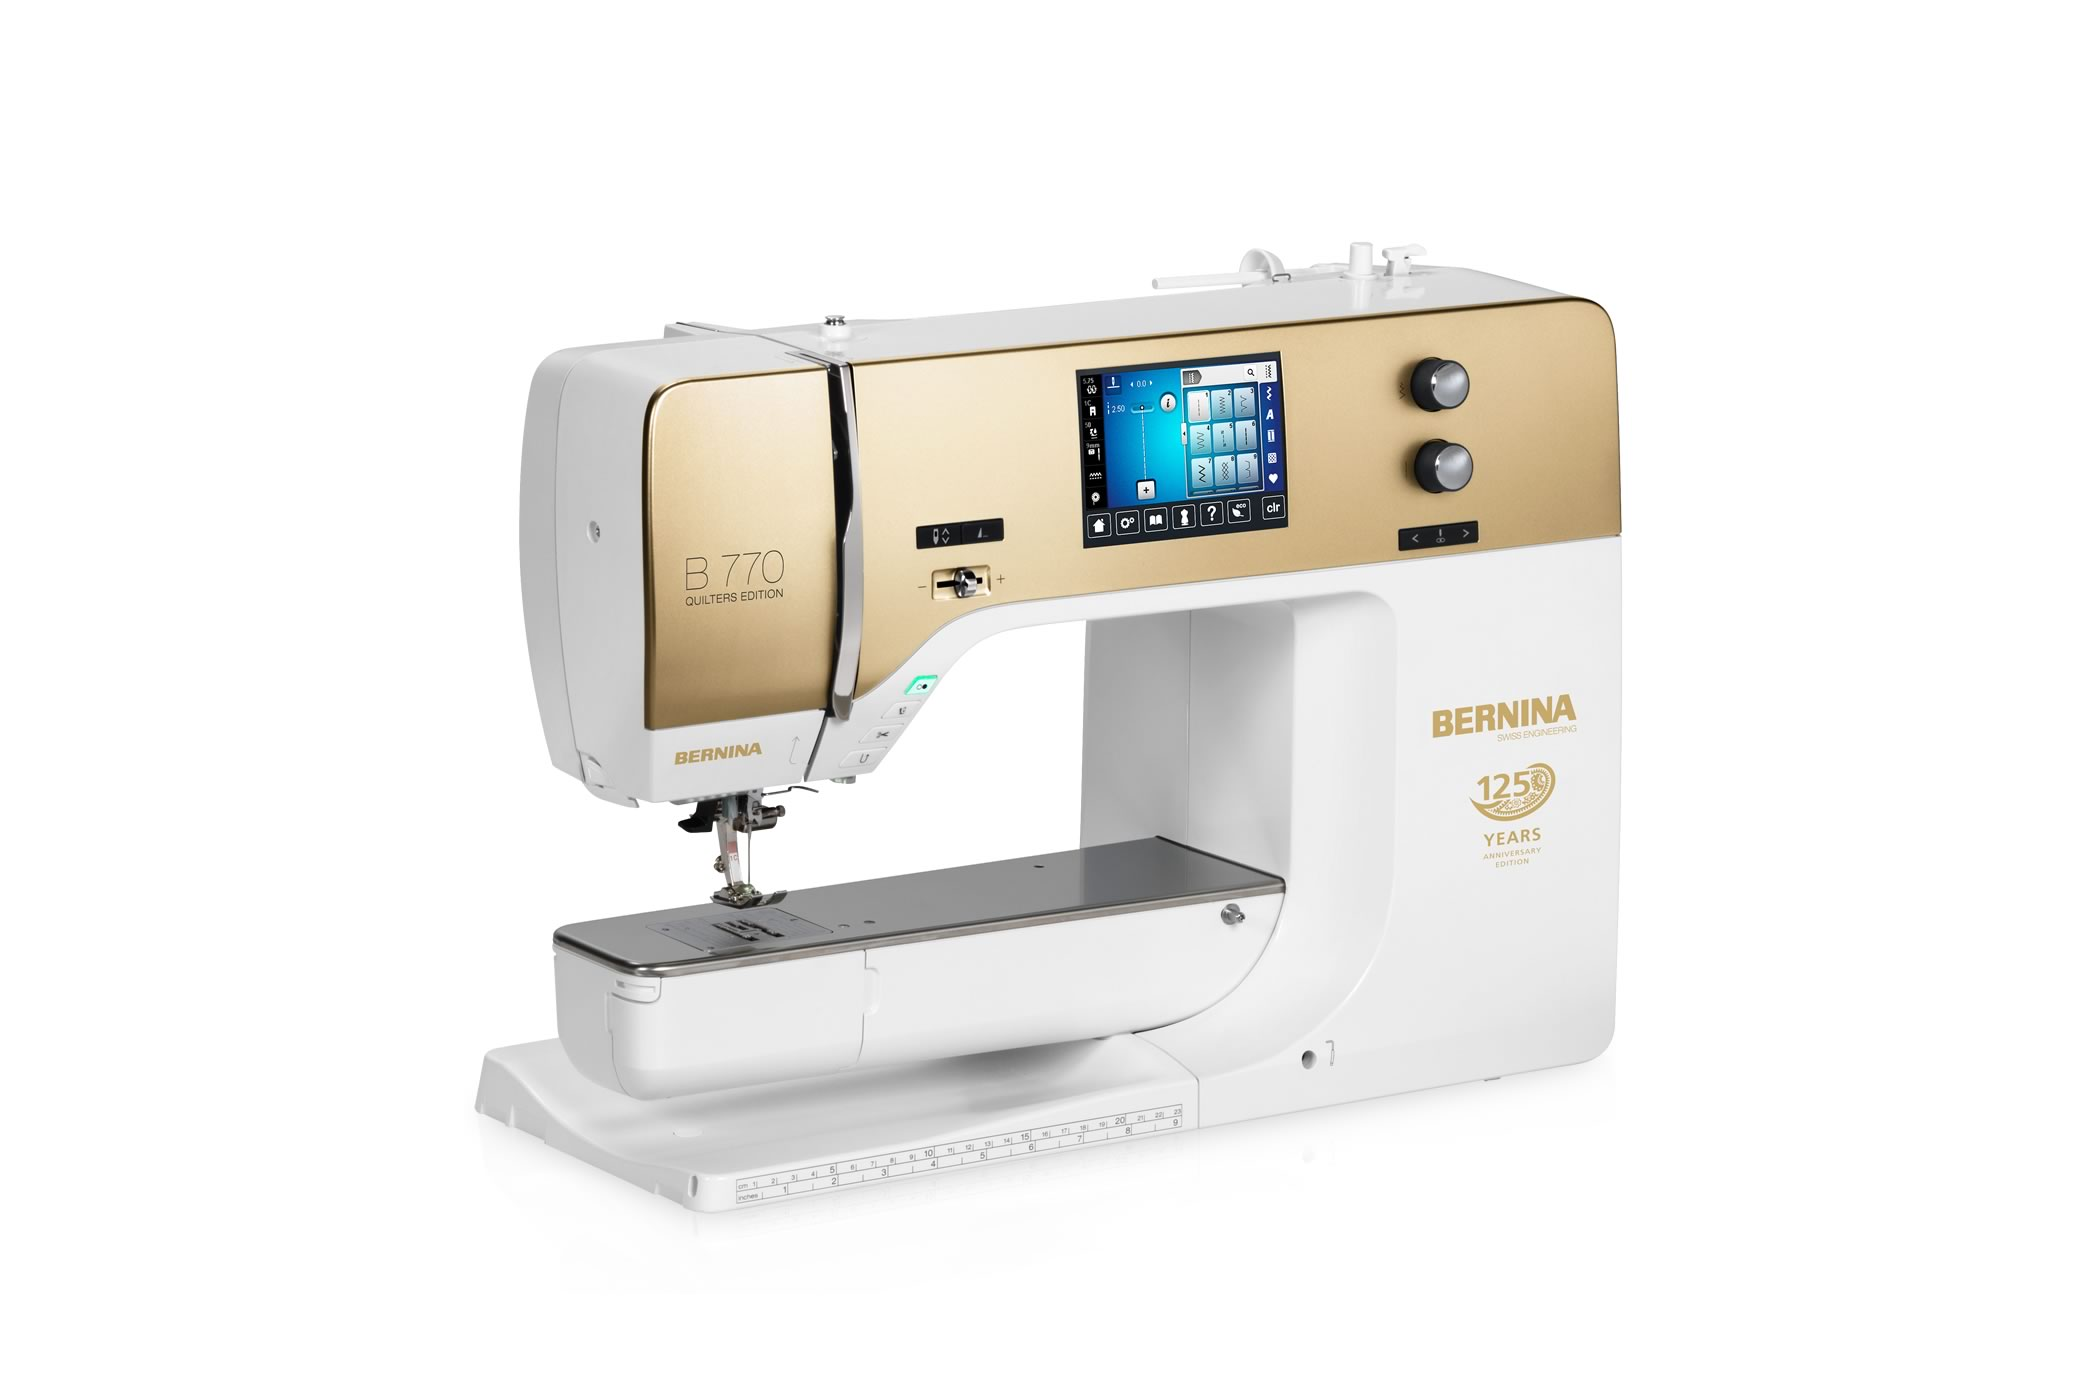 BERNINA 770 QE jubileumeditie